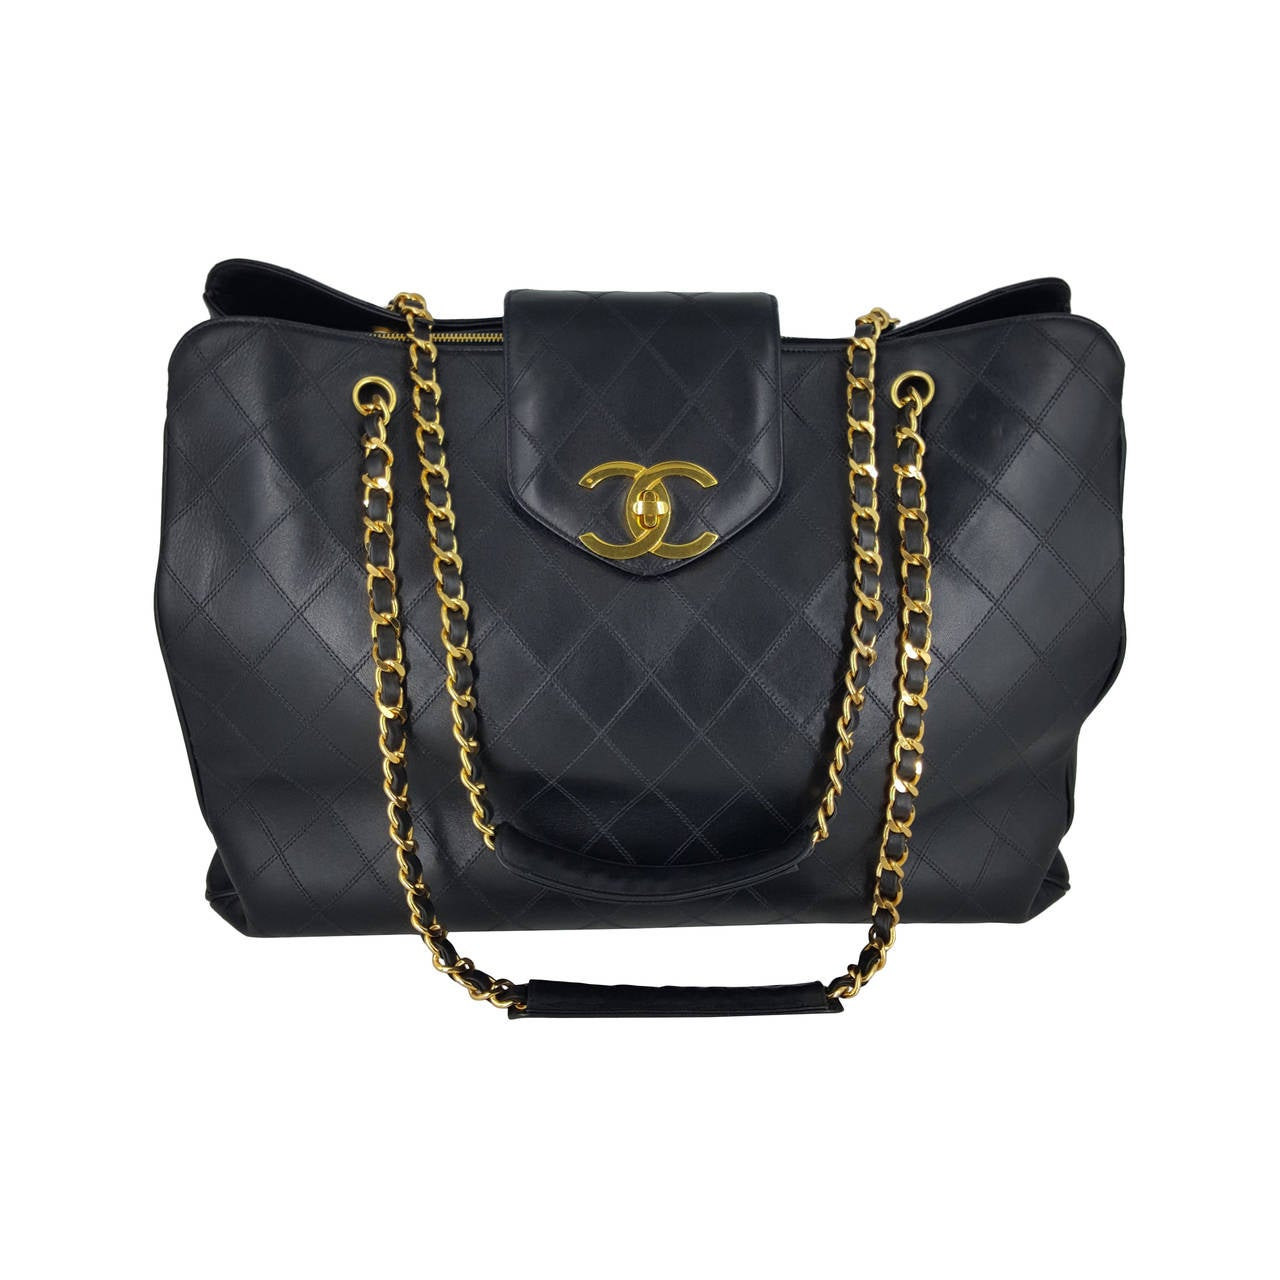 Chanel Black XL Jumbo Weekender Overnighter With Gold Hardware. For Sale